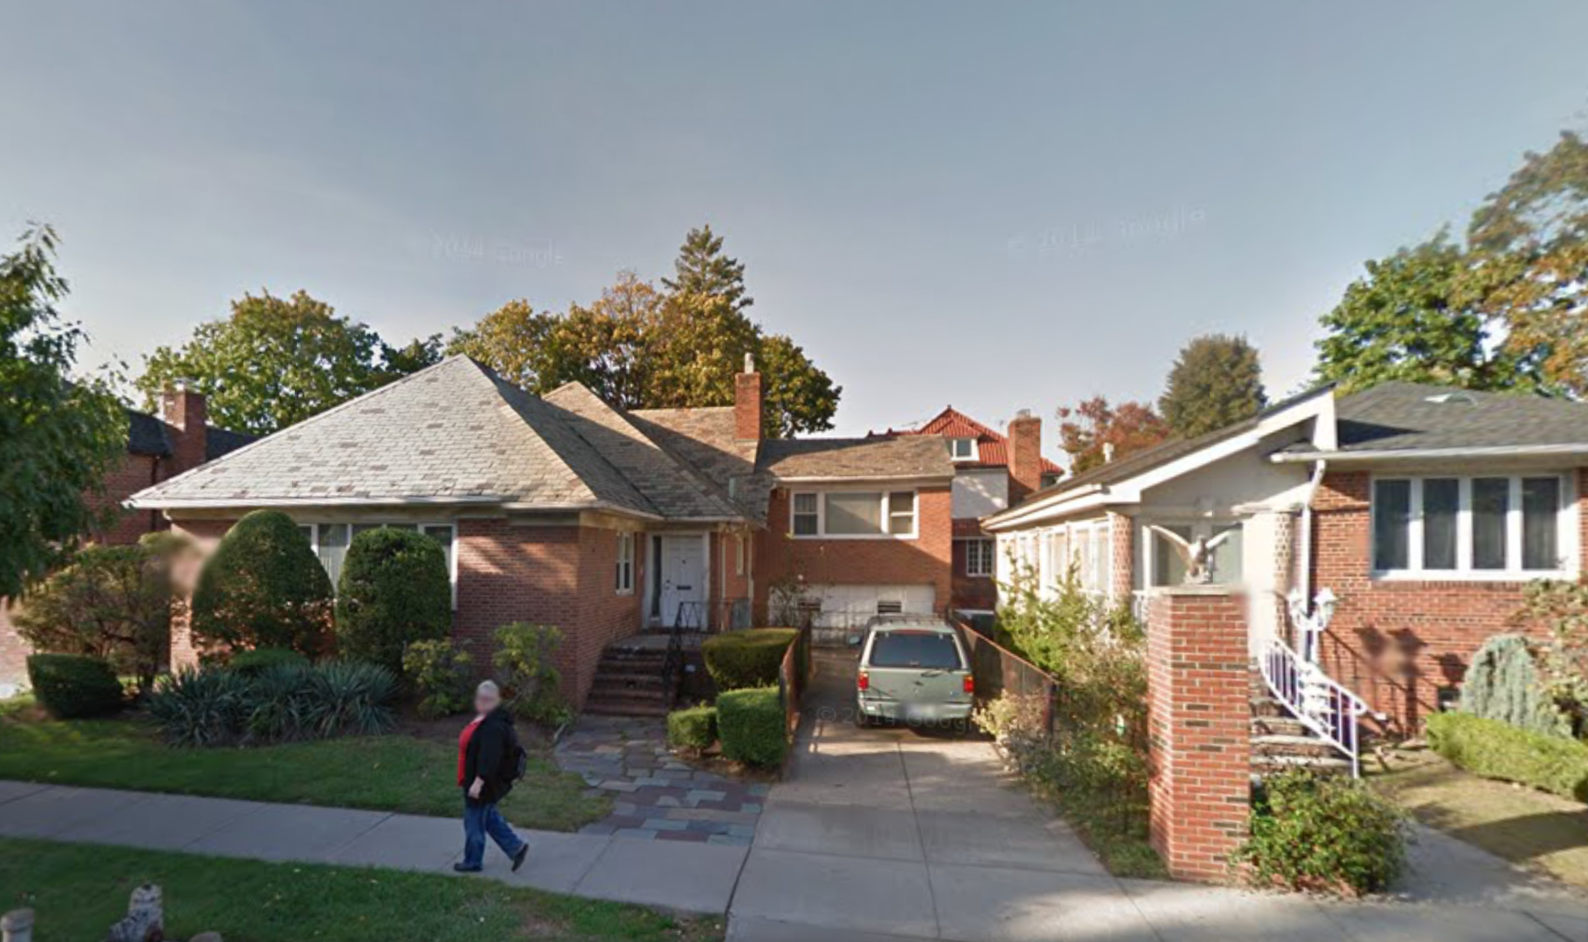 Blind Midwood Resident Lived With Her Son's Dead Corpse For 20 Years